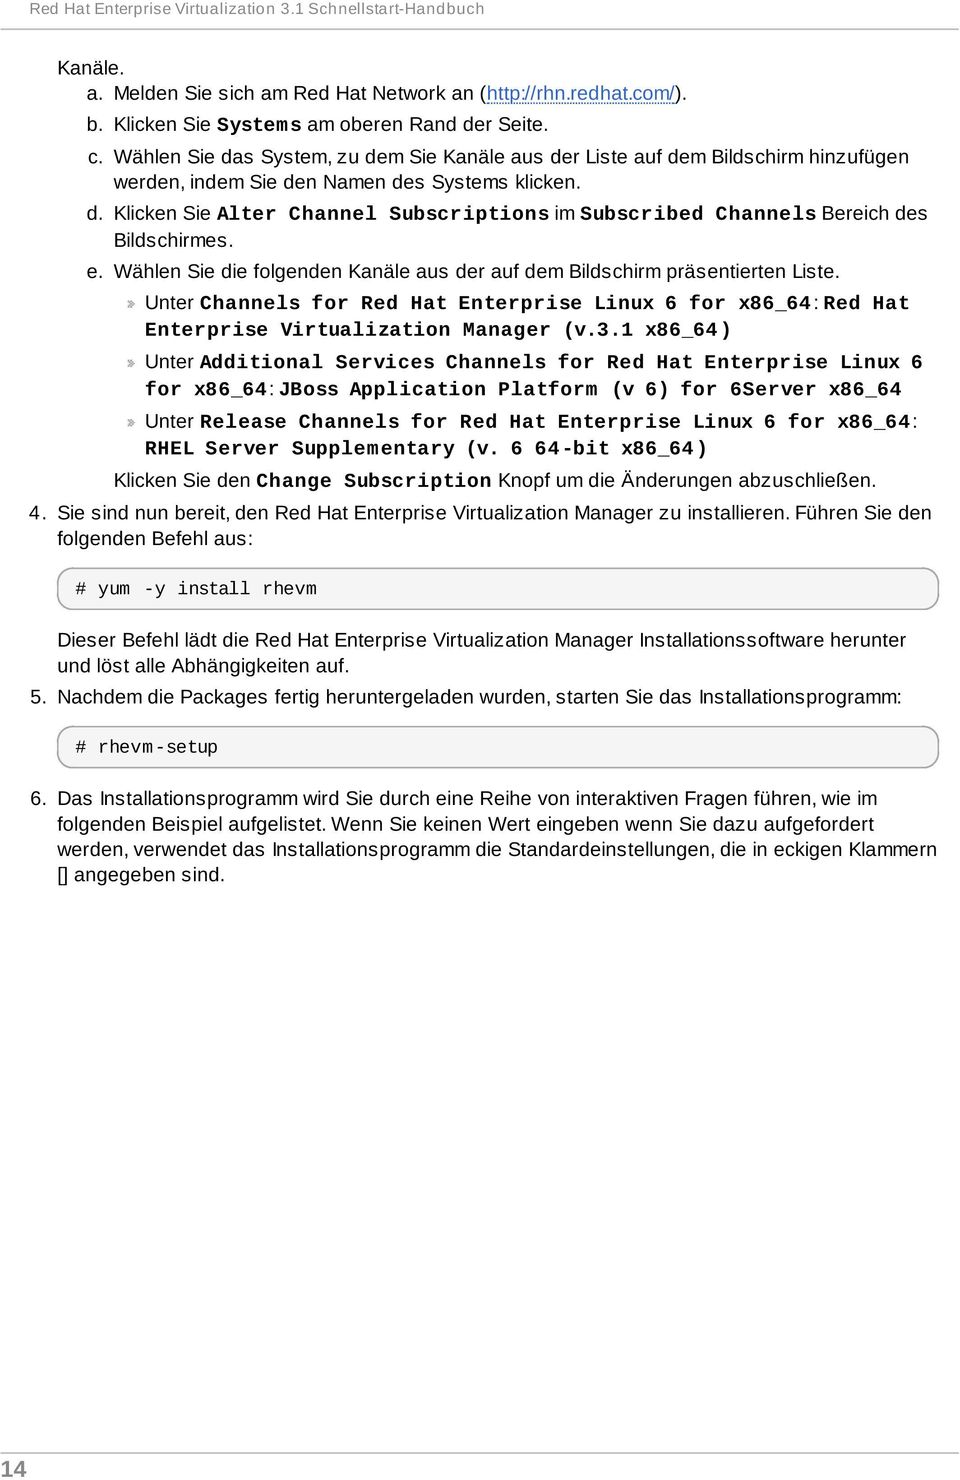 e. Wählen Sie die folgenden Kanäle aus der auf dem Bildschirm präsentierten Liste. Unter Channels for Red Hat Enterprise Linux 6 for x86_64: Red Hat Enterprise Virtualization Manager (v.3.